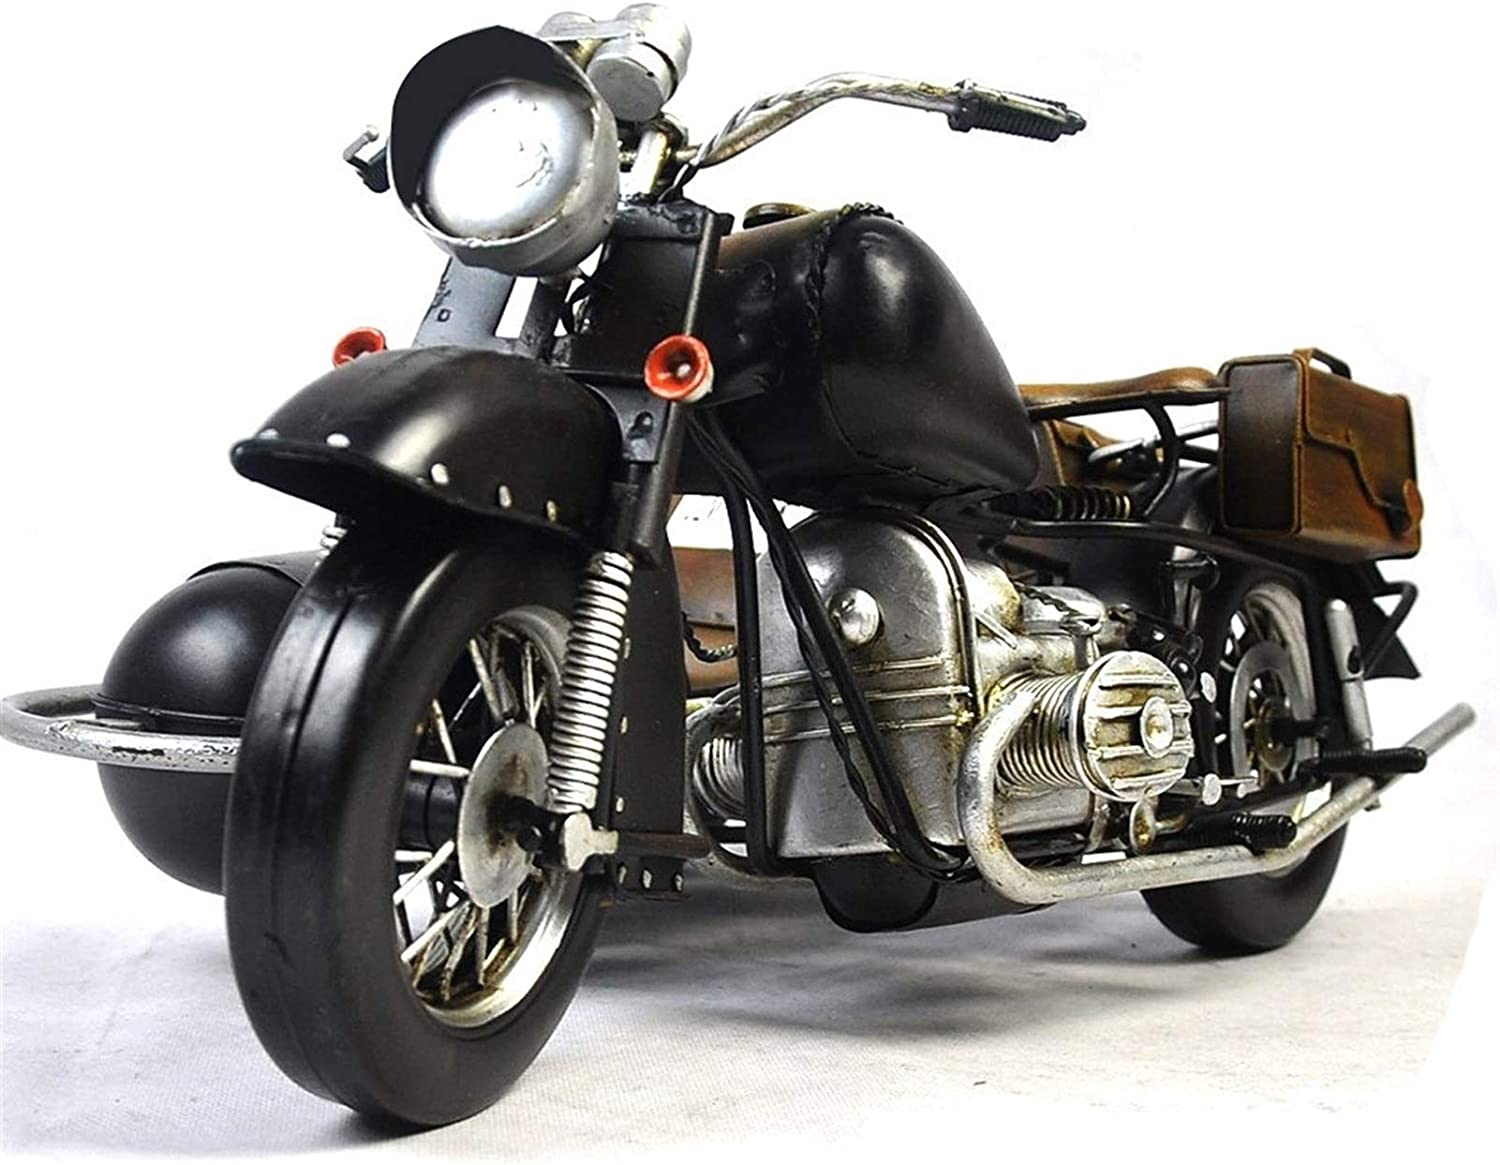 CLNAONG Motorcycle Model Metal Crafts Car Tampa Mall Free shipping anywhere in the nation Wrought Retro Mo Iron